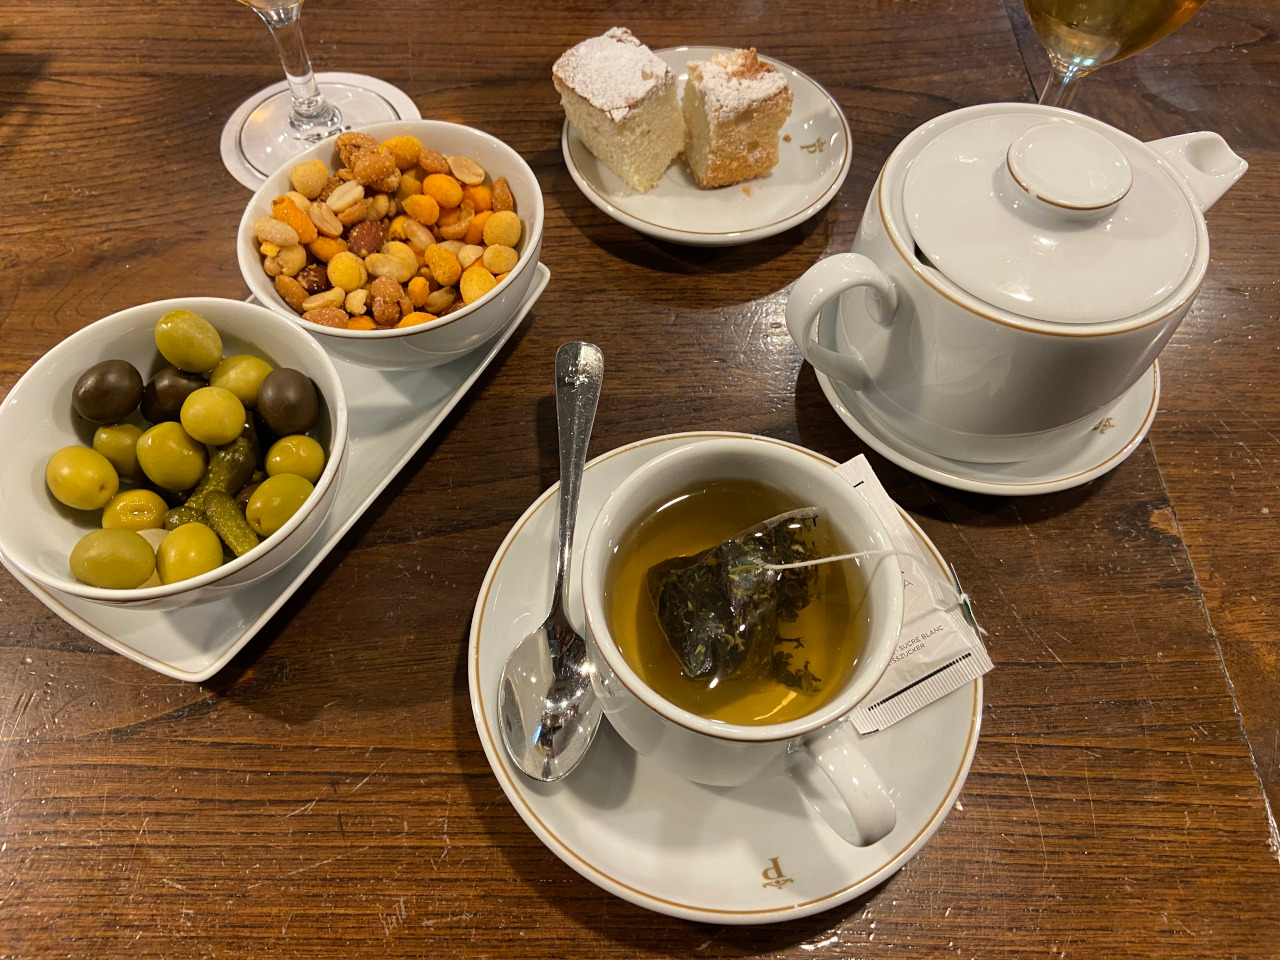 Olives are very popular in Spain. Discover what to eat in Spain - 16 Spanish foods to try - in this article